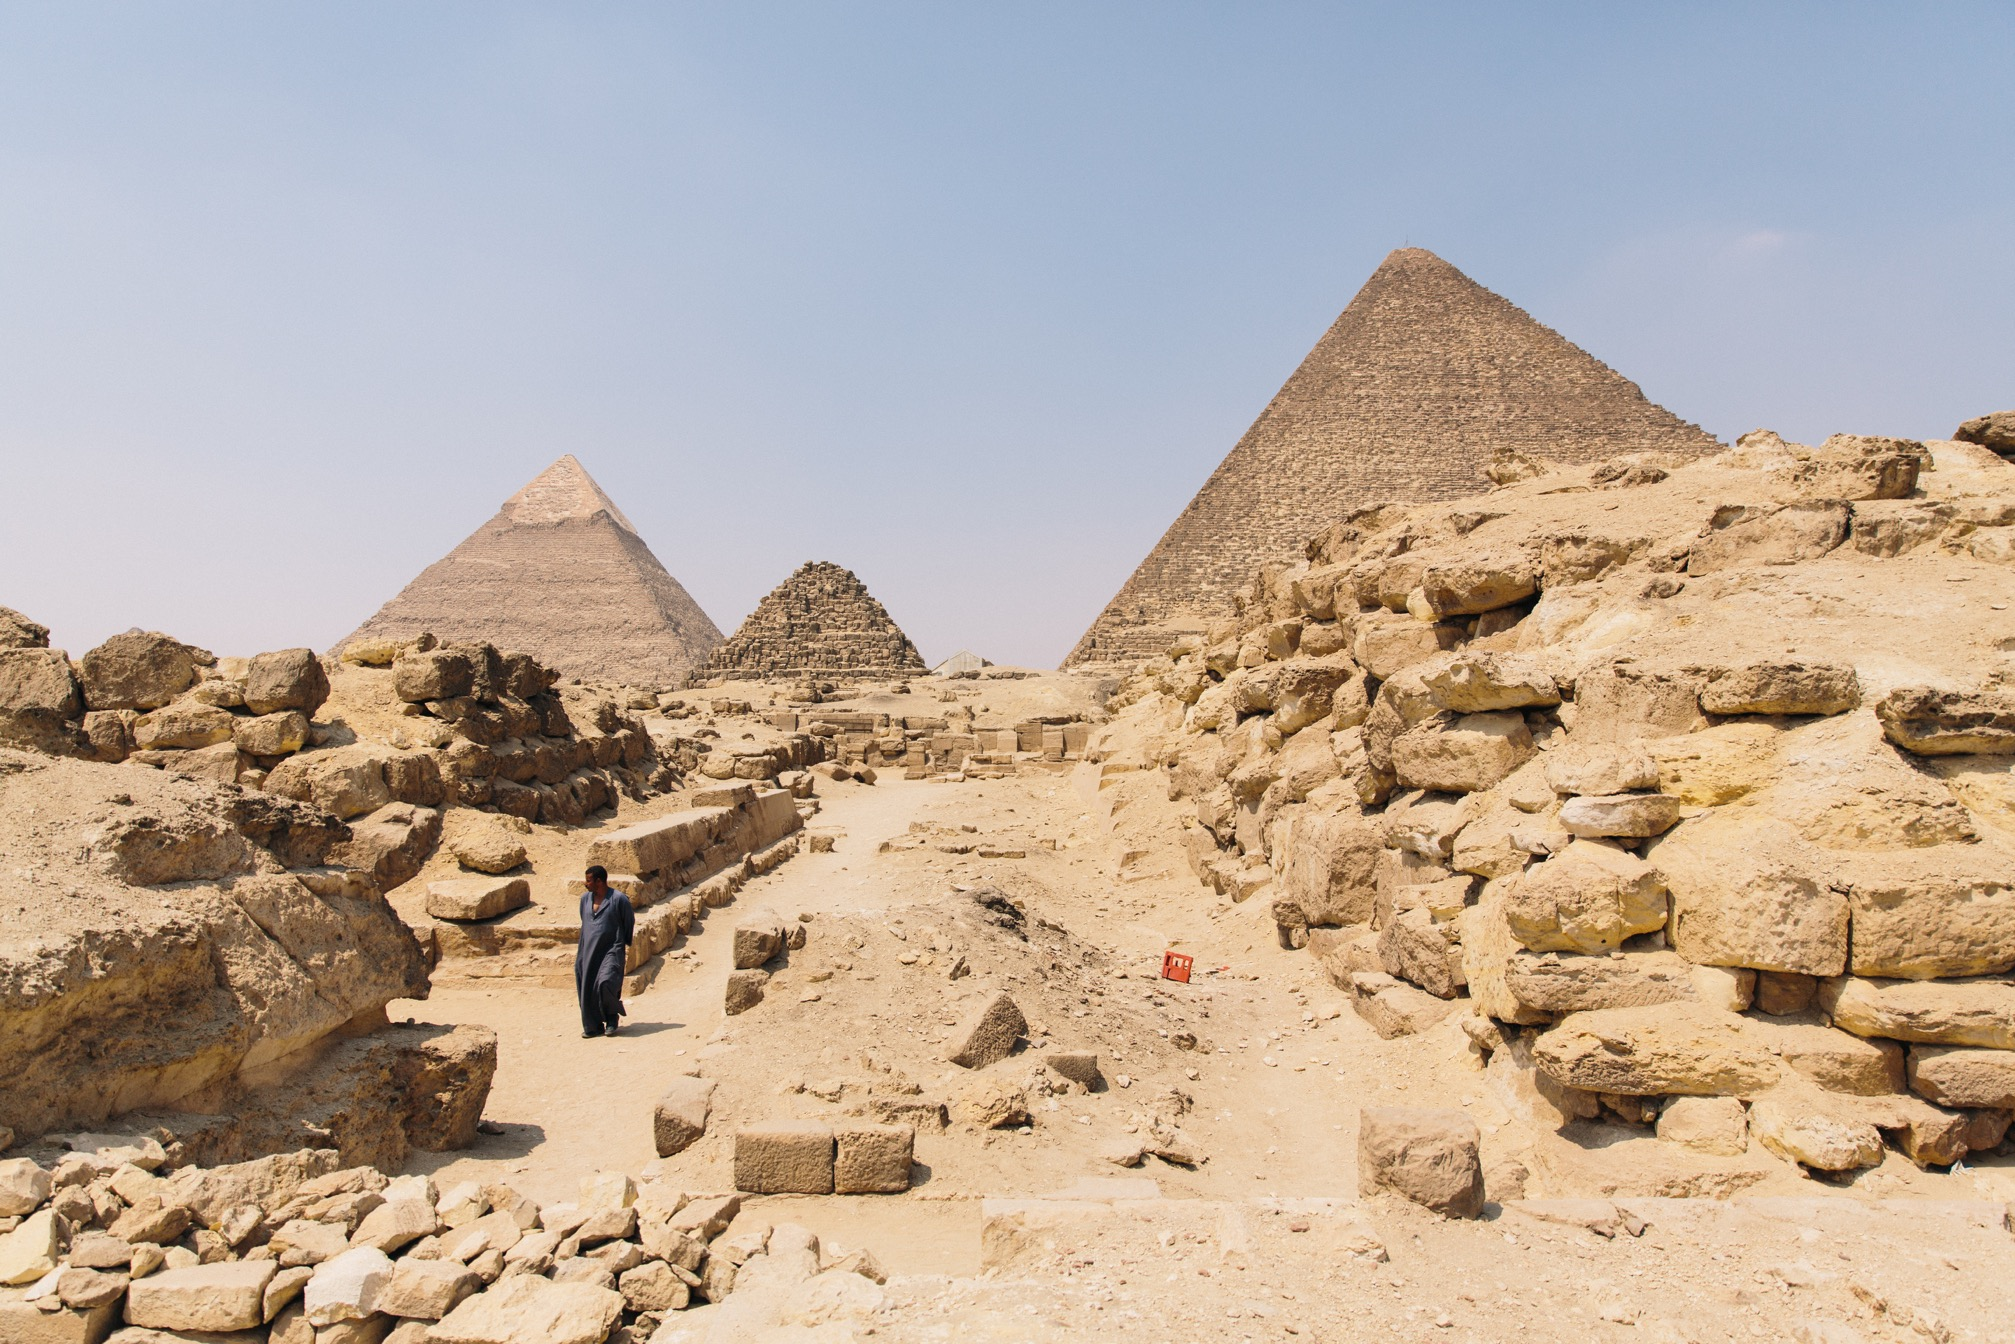 Egypt: Cairo and the Pyramids of Giza